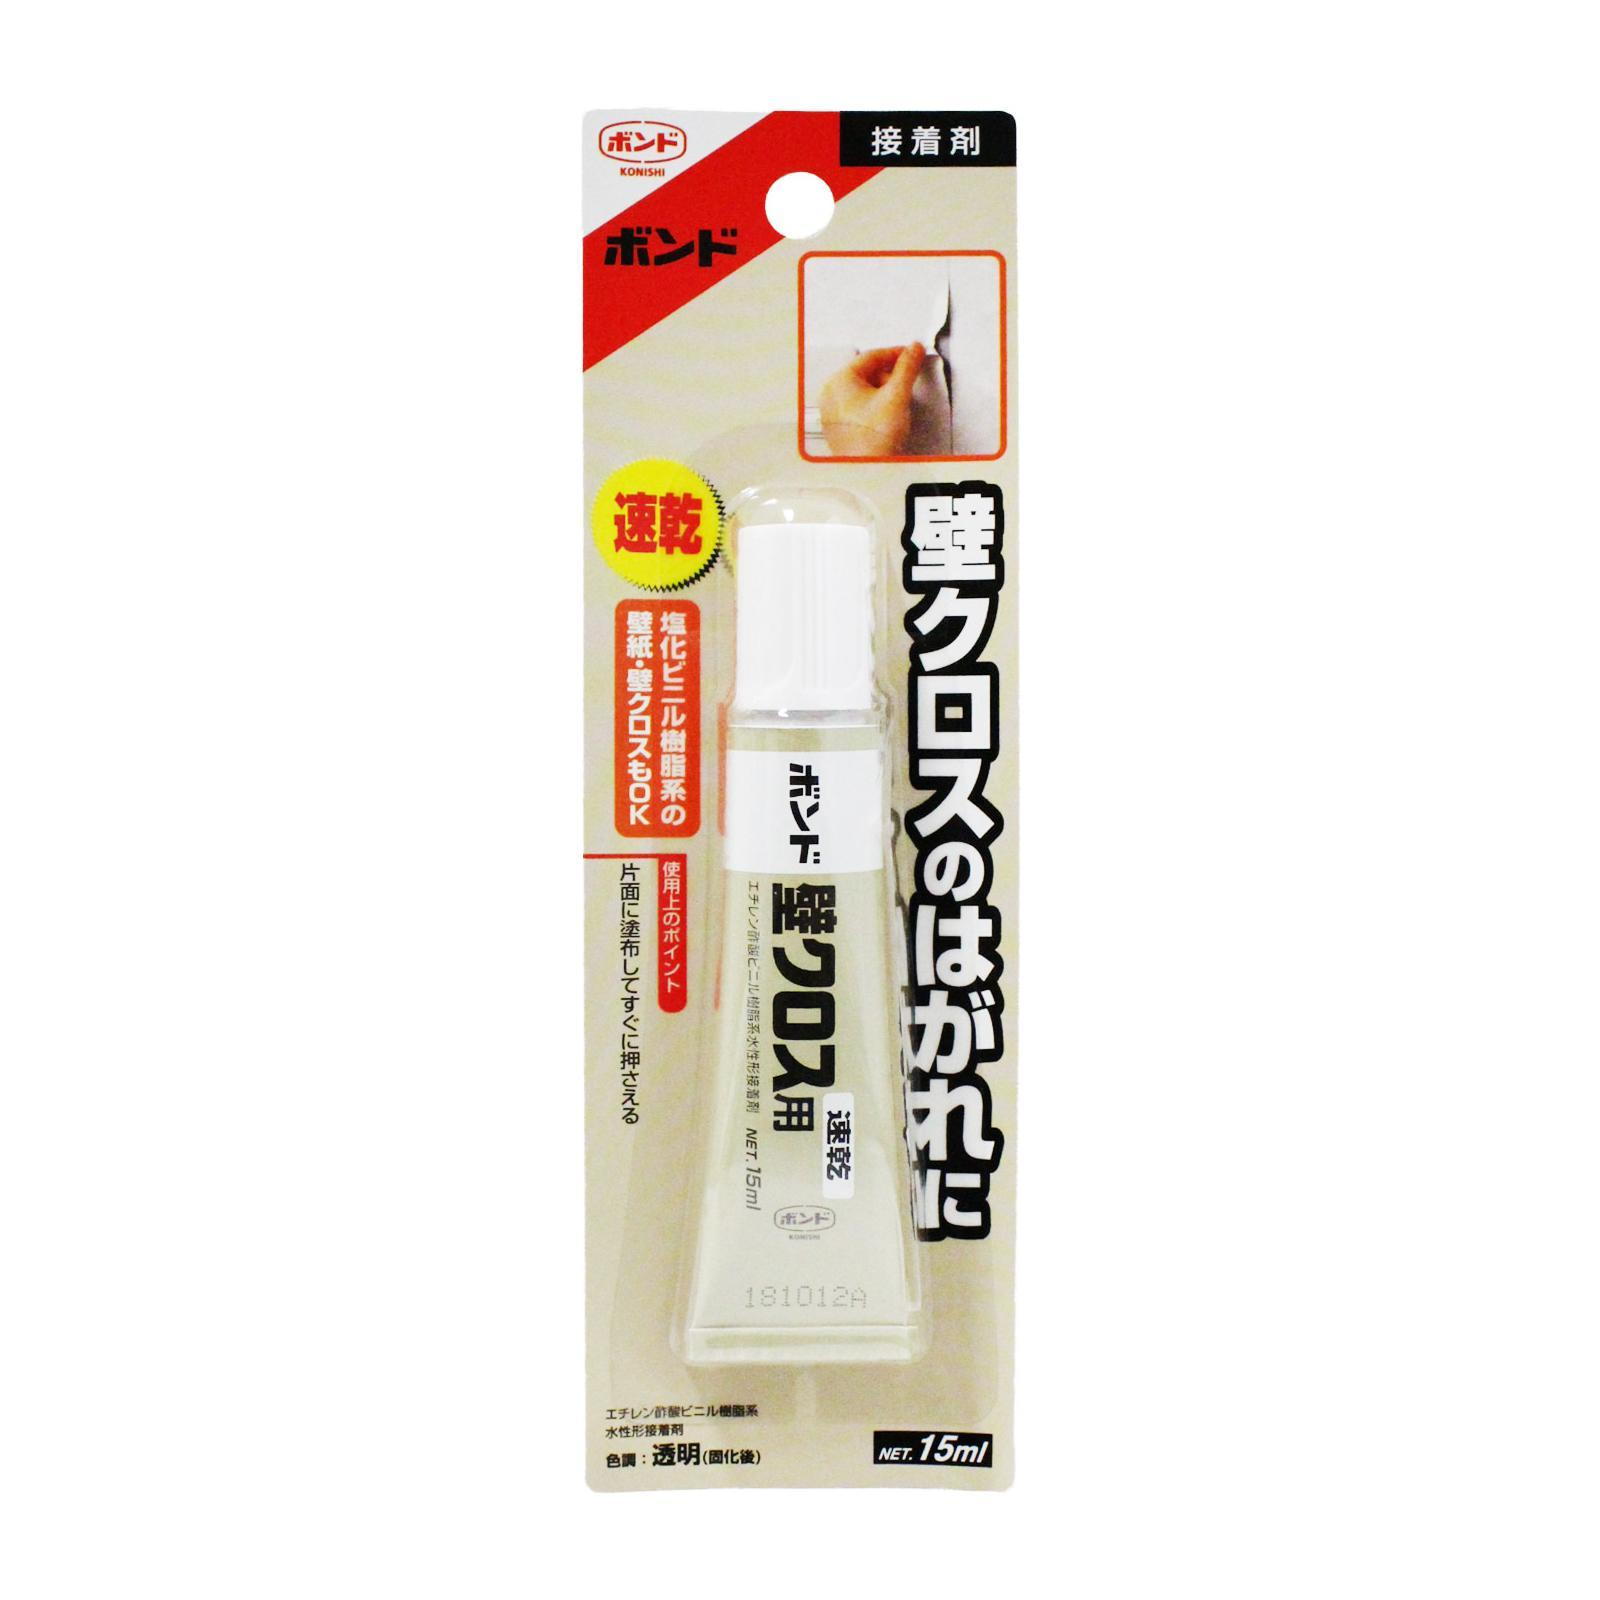 Seiwa-Pro Quick-Drying Bond Adhesisve Glue For Wallpaper 15ml By Redmart.